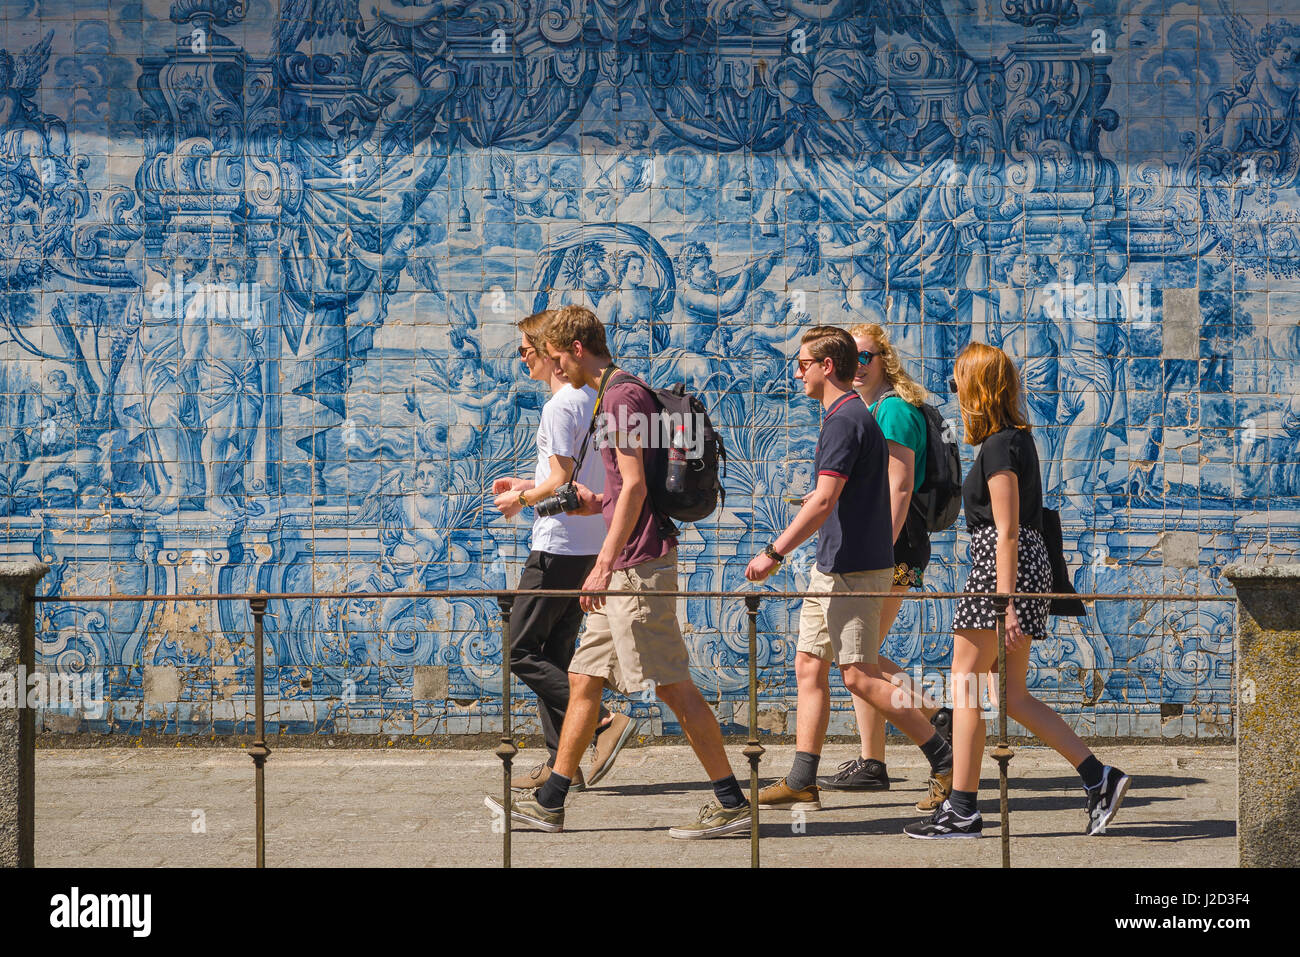 Porto Portugal azulejos, a group of young people walk past a wall in the Se cathedral cloisters decorated with blue - Stock Image